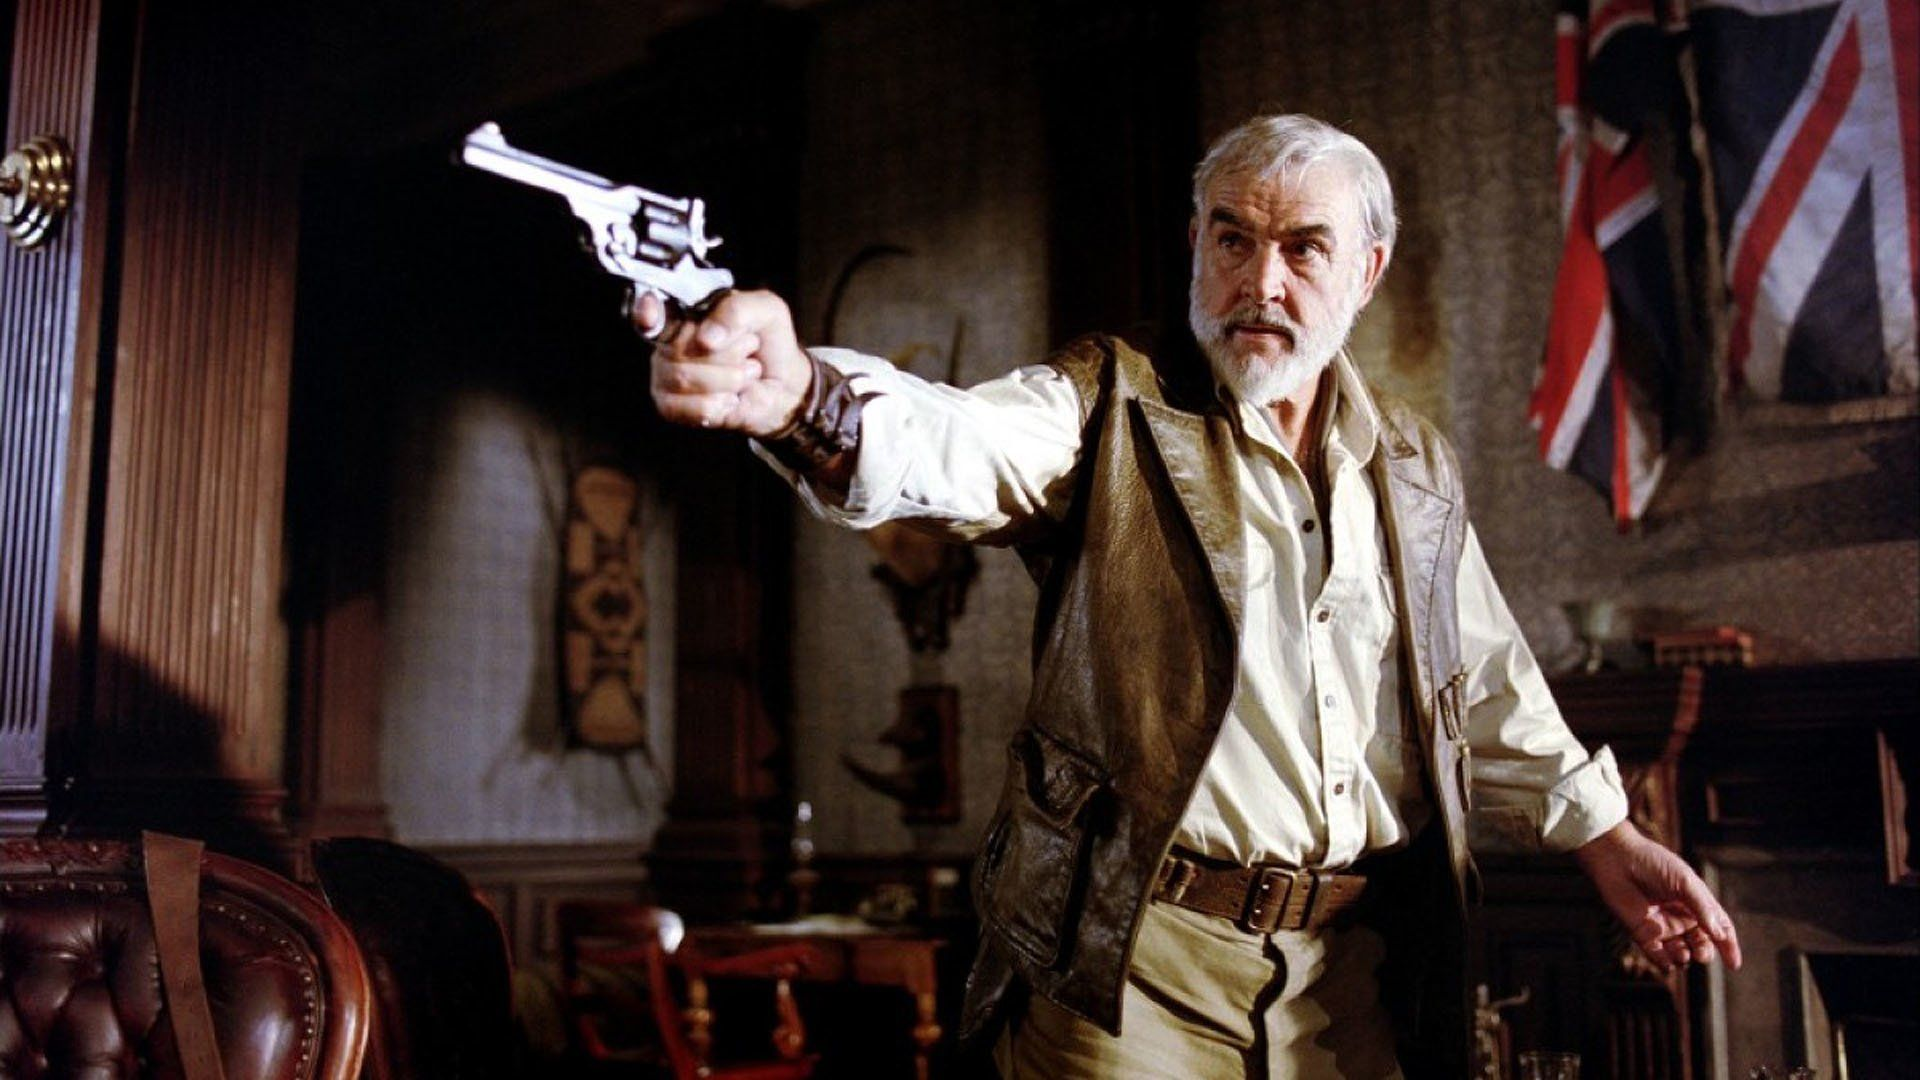 """Connery's last role as Allan Quatermain in """"The League of Extraordinary Gentlemen"""" (2003)"""